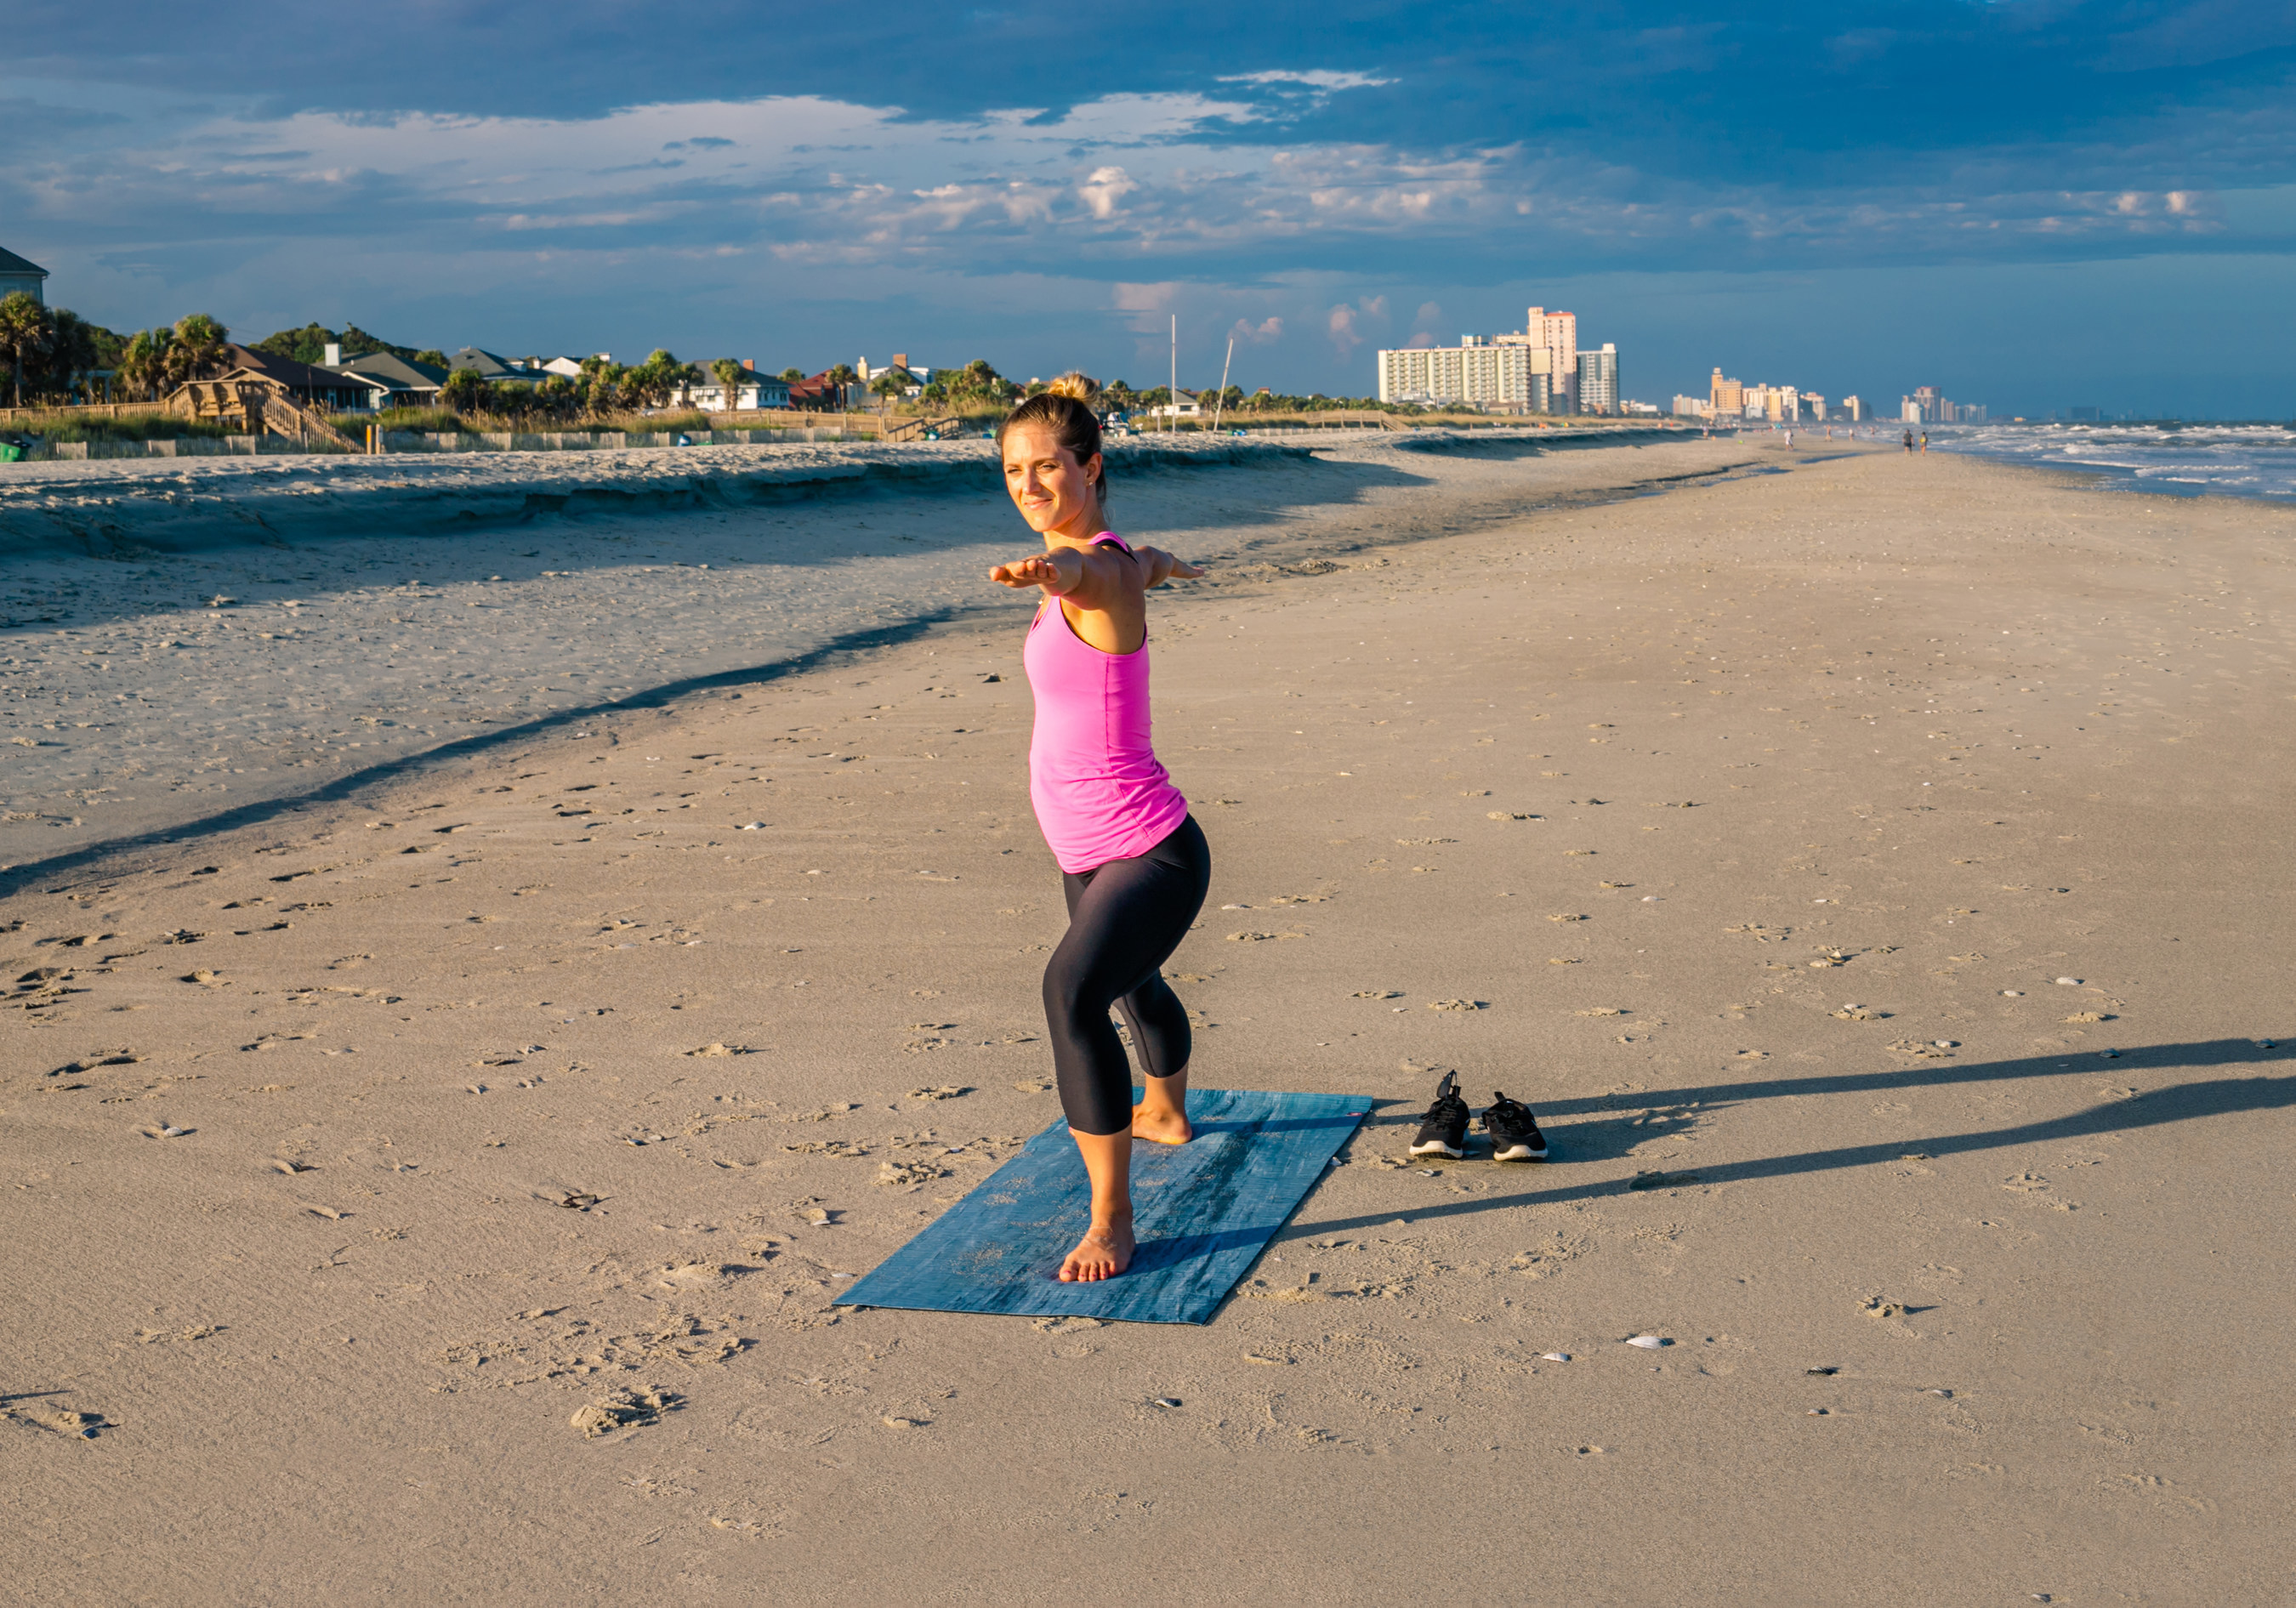 Discover Relaxation In Myrtle Beach South Carolina Sports those, of course, are the initials for north carolina. discover relaxation in myrtle beach south carolina